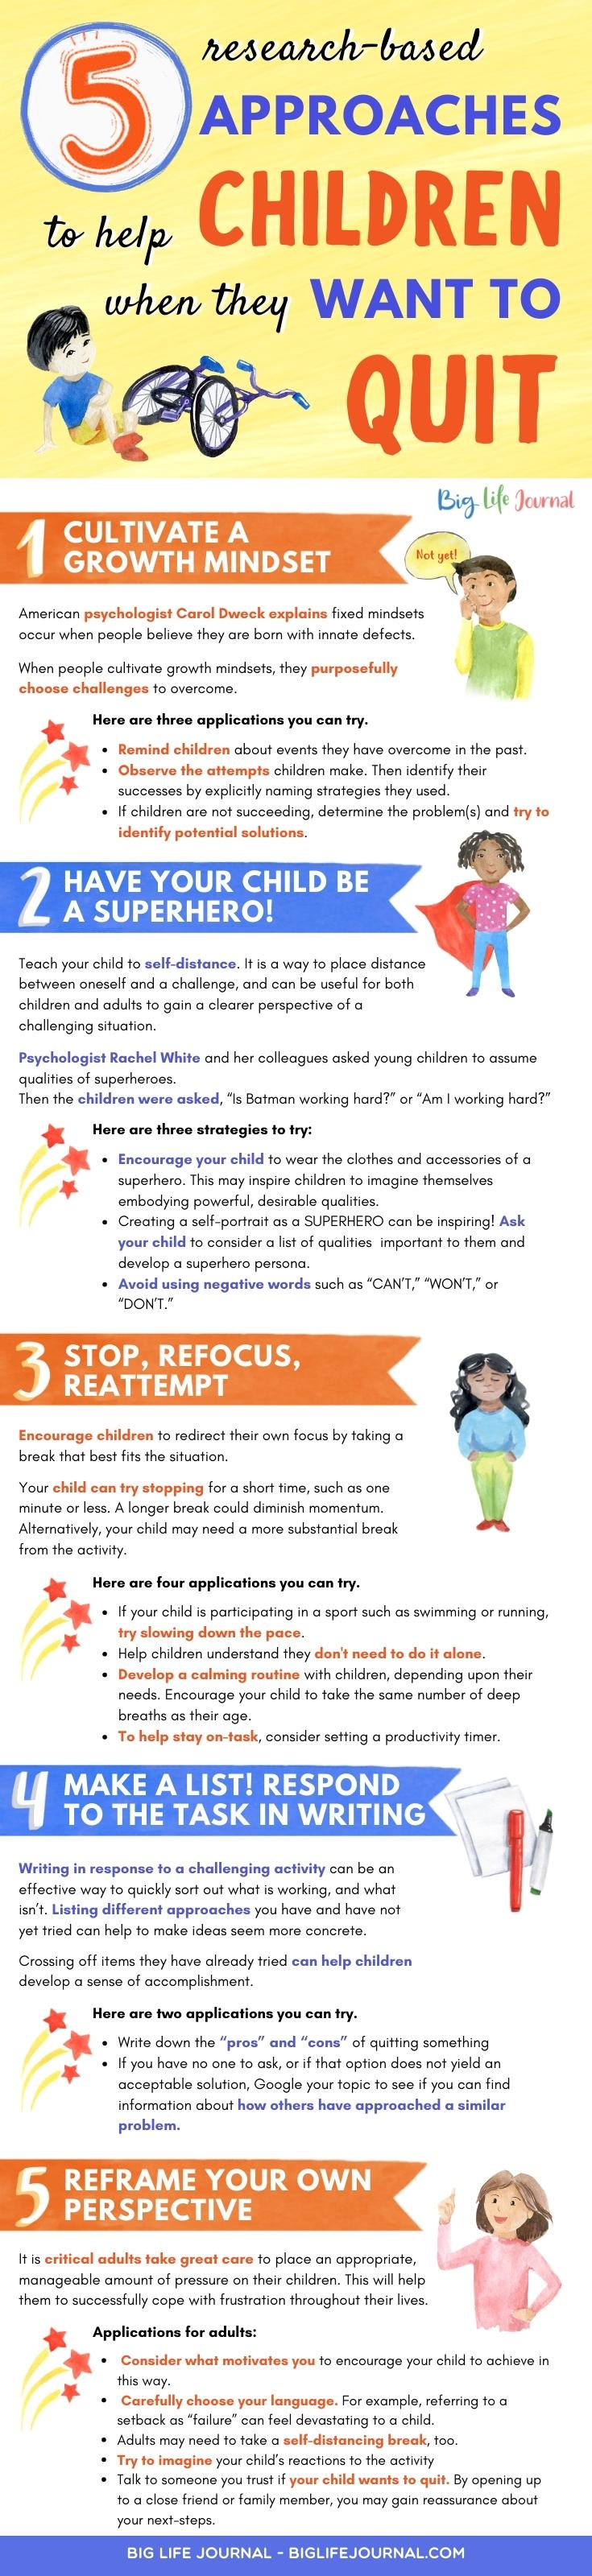 5 research-based approaches to help children when they want to quit